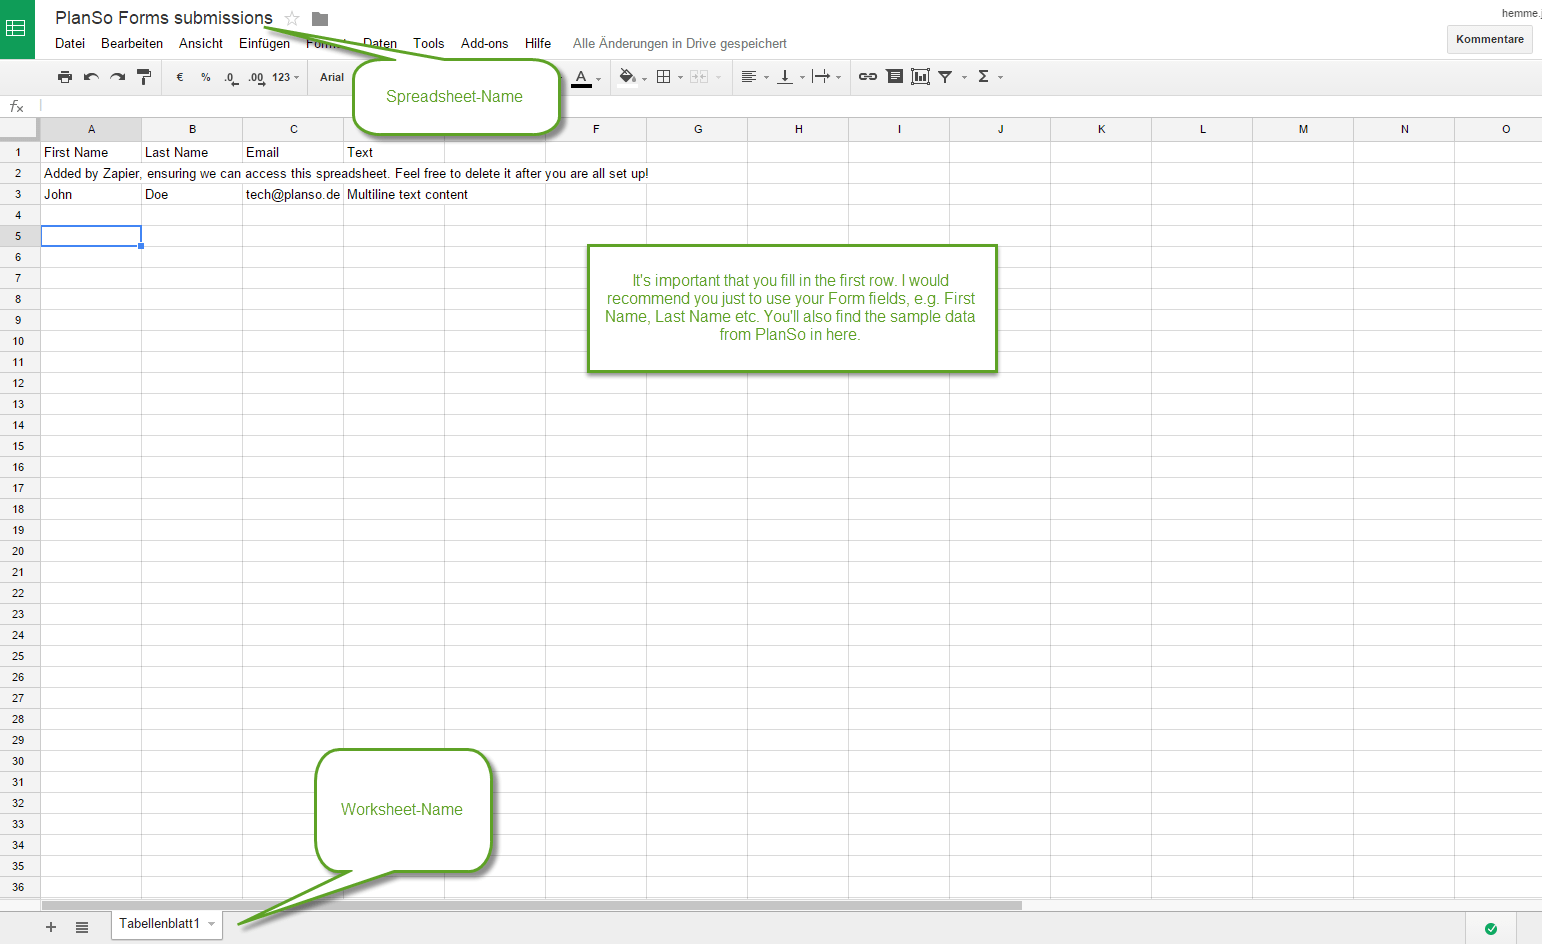 How To Store Planso Forms Submissions In Sheets Or